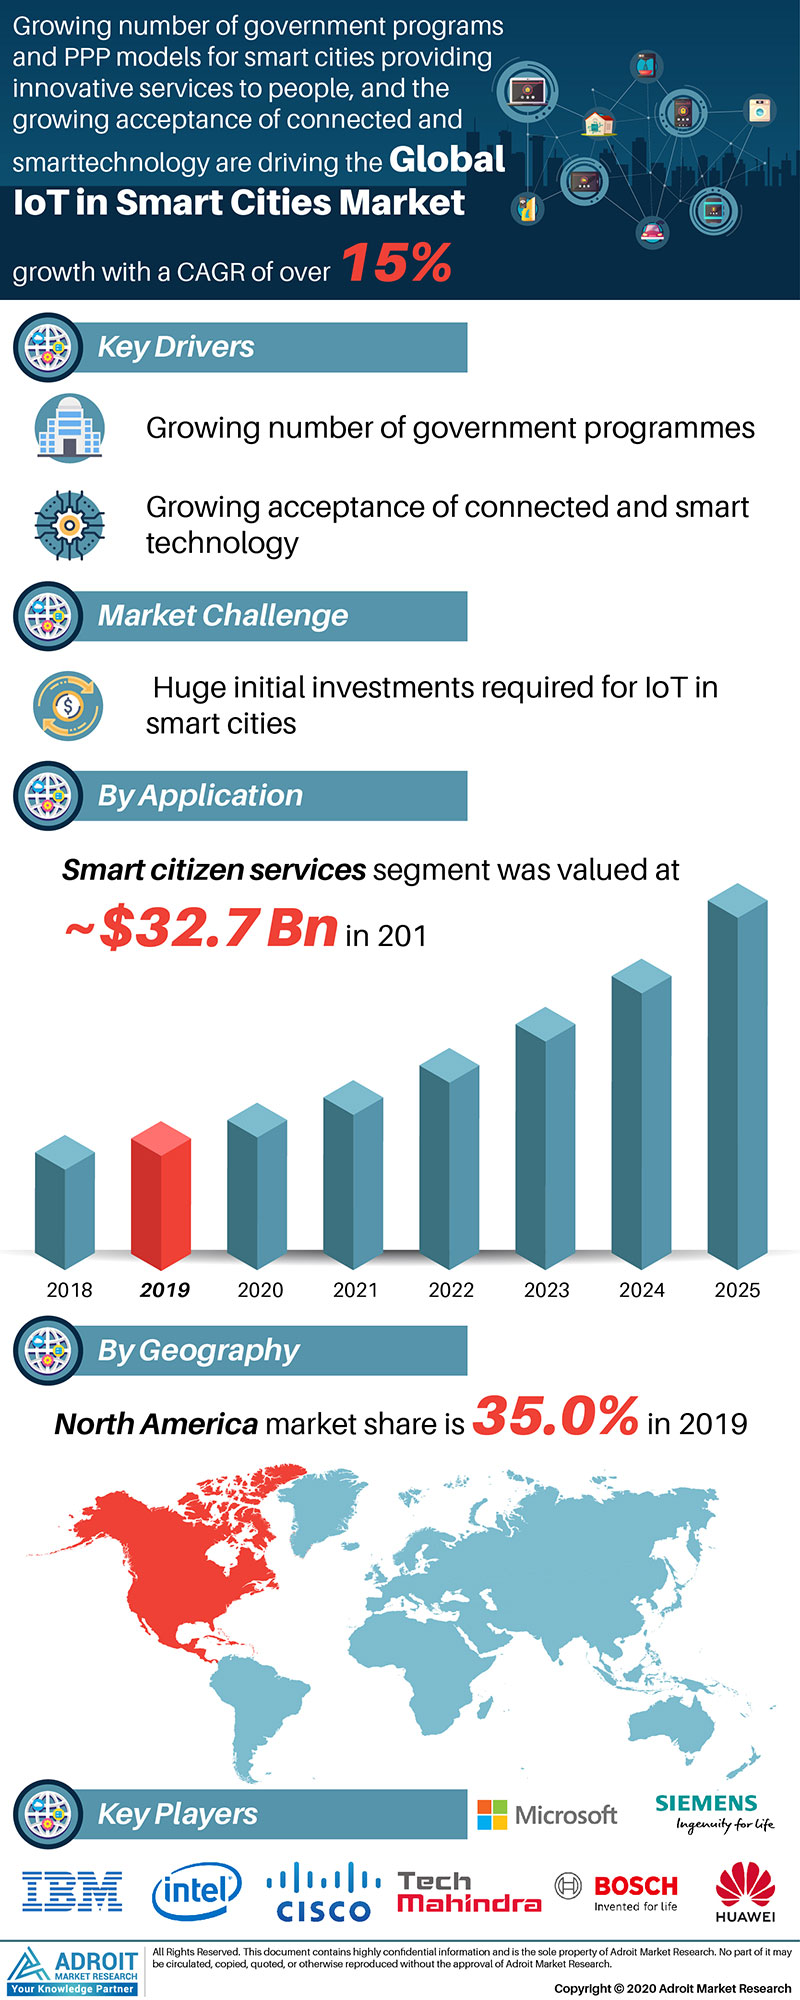 Iot In Smart Cities Market Size 2017 By Application, Product, Region and Forecast 2019 to 2025